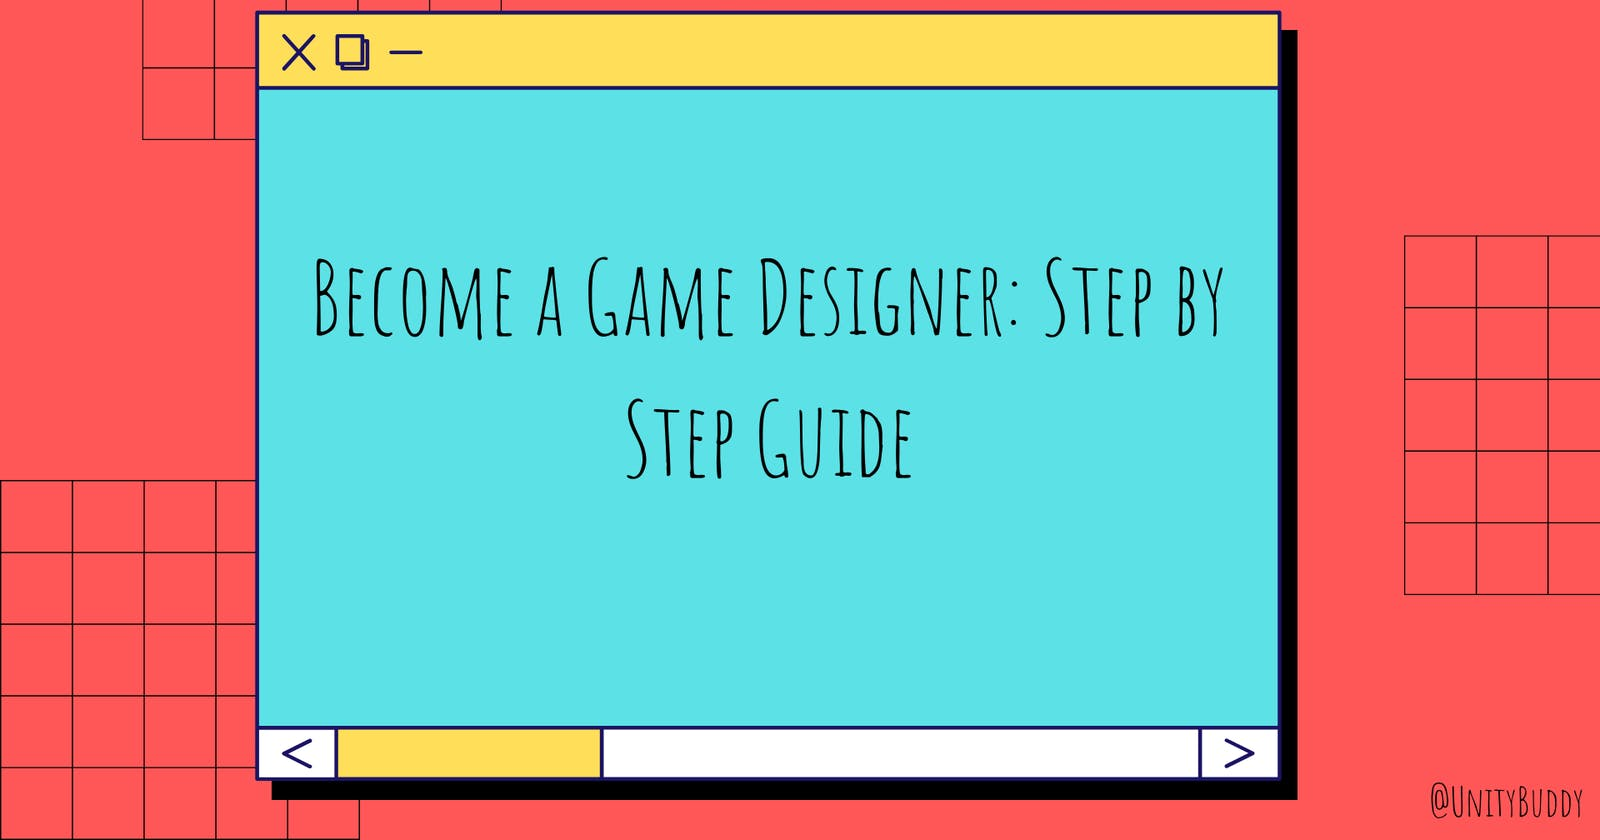 Become a Game Designer: Step by Step Guide